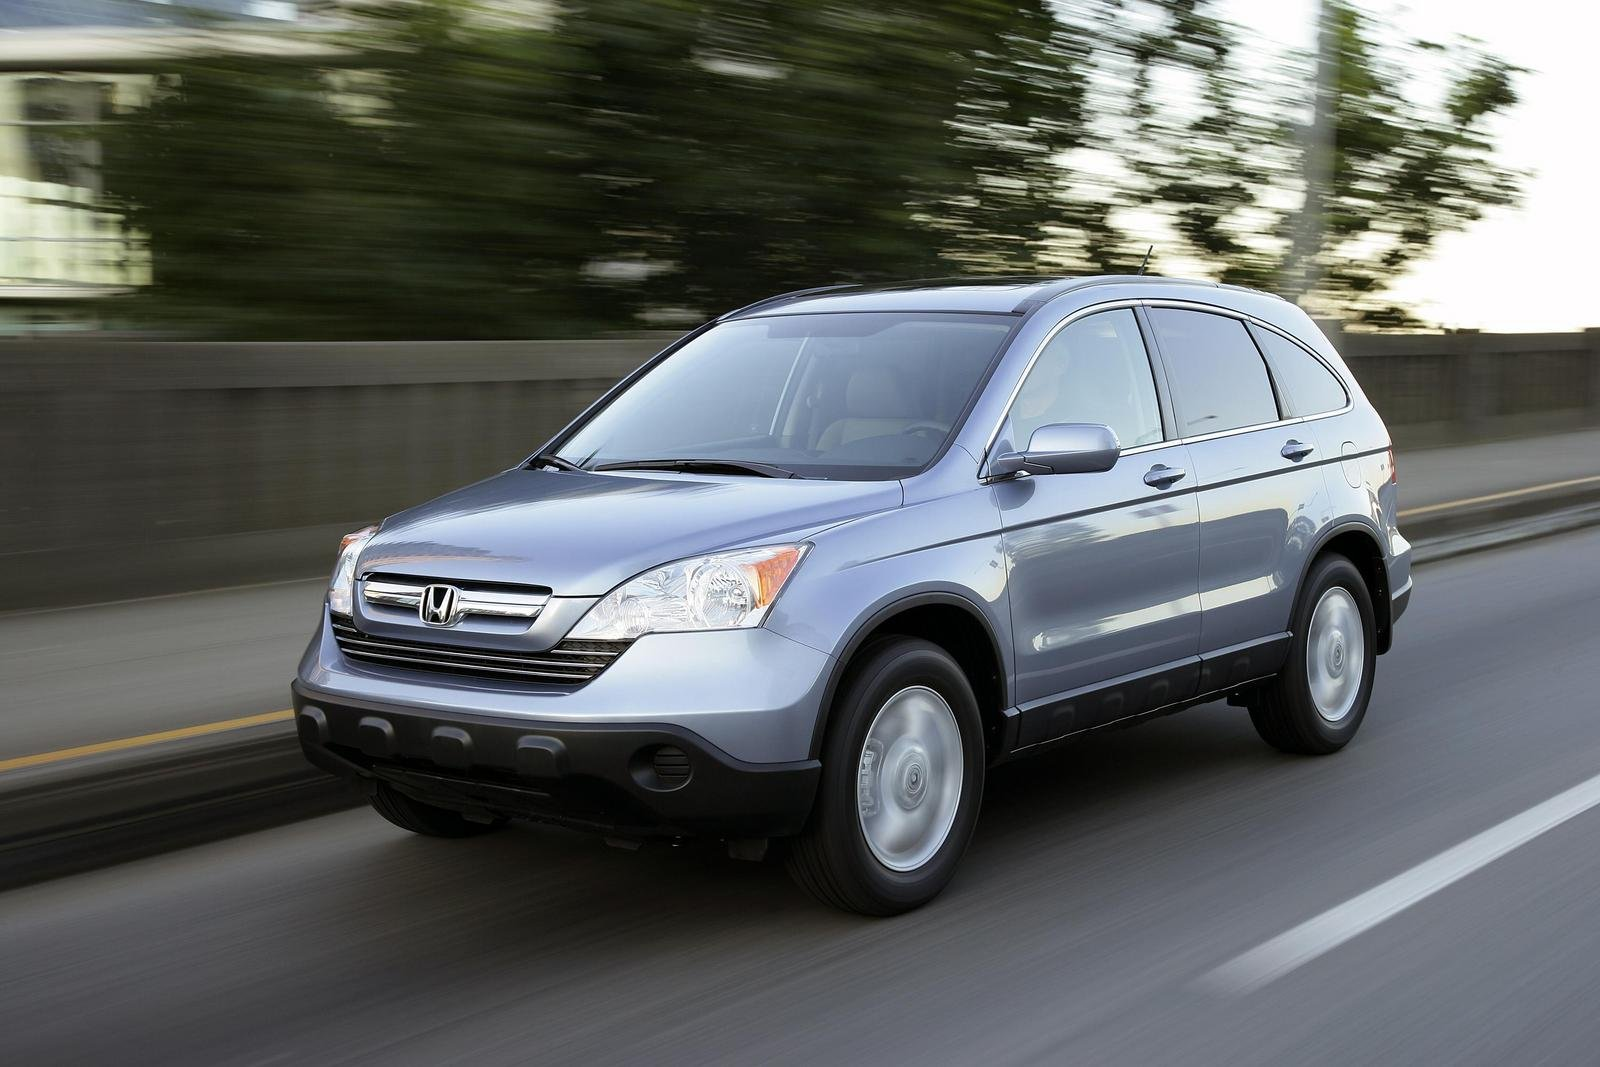 Chevy Small Suv >> 2008 Honda CR-V Review - Top Speed